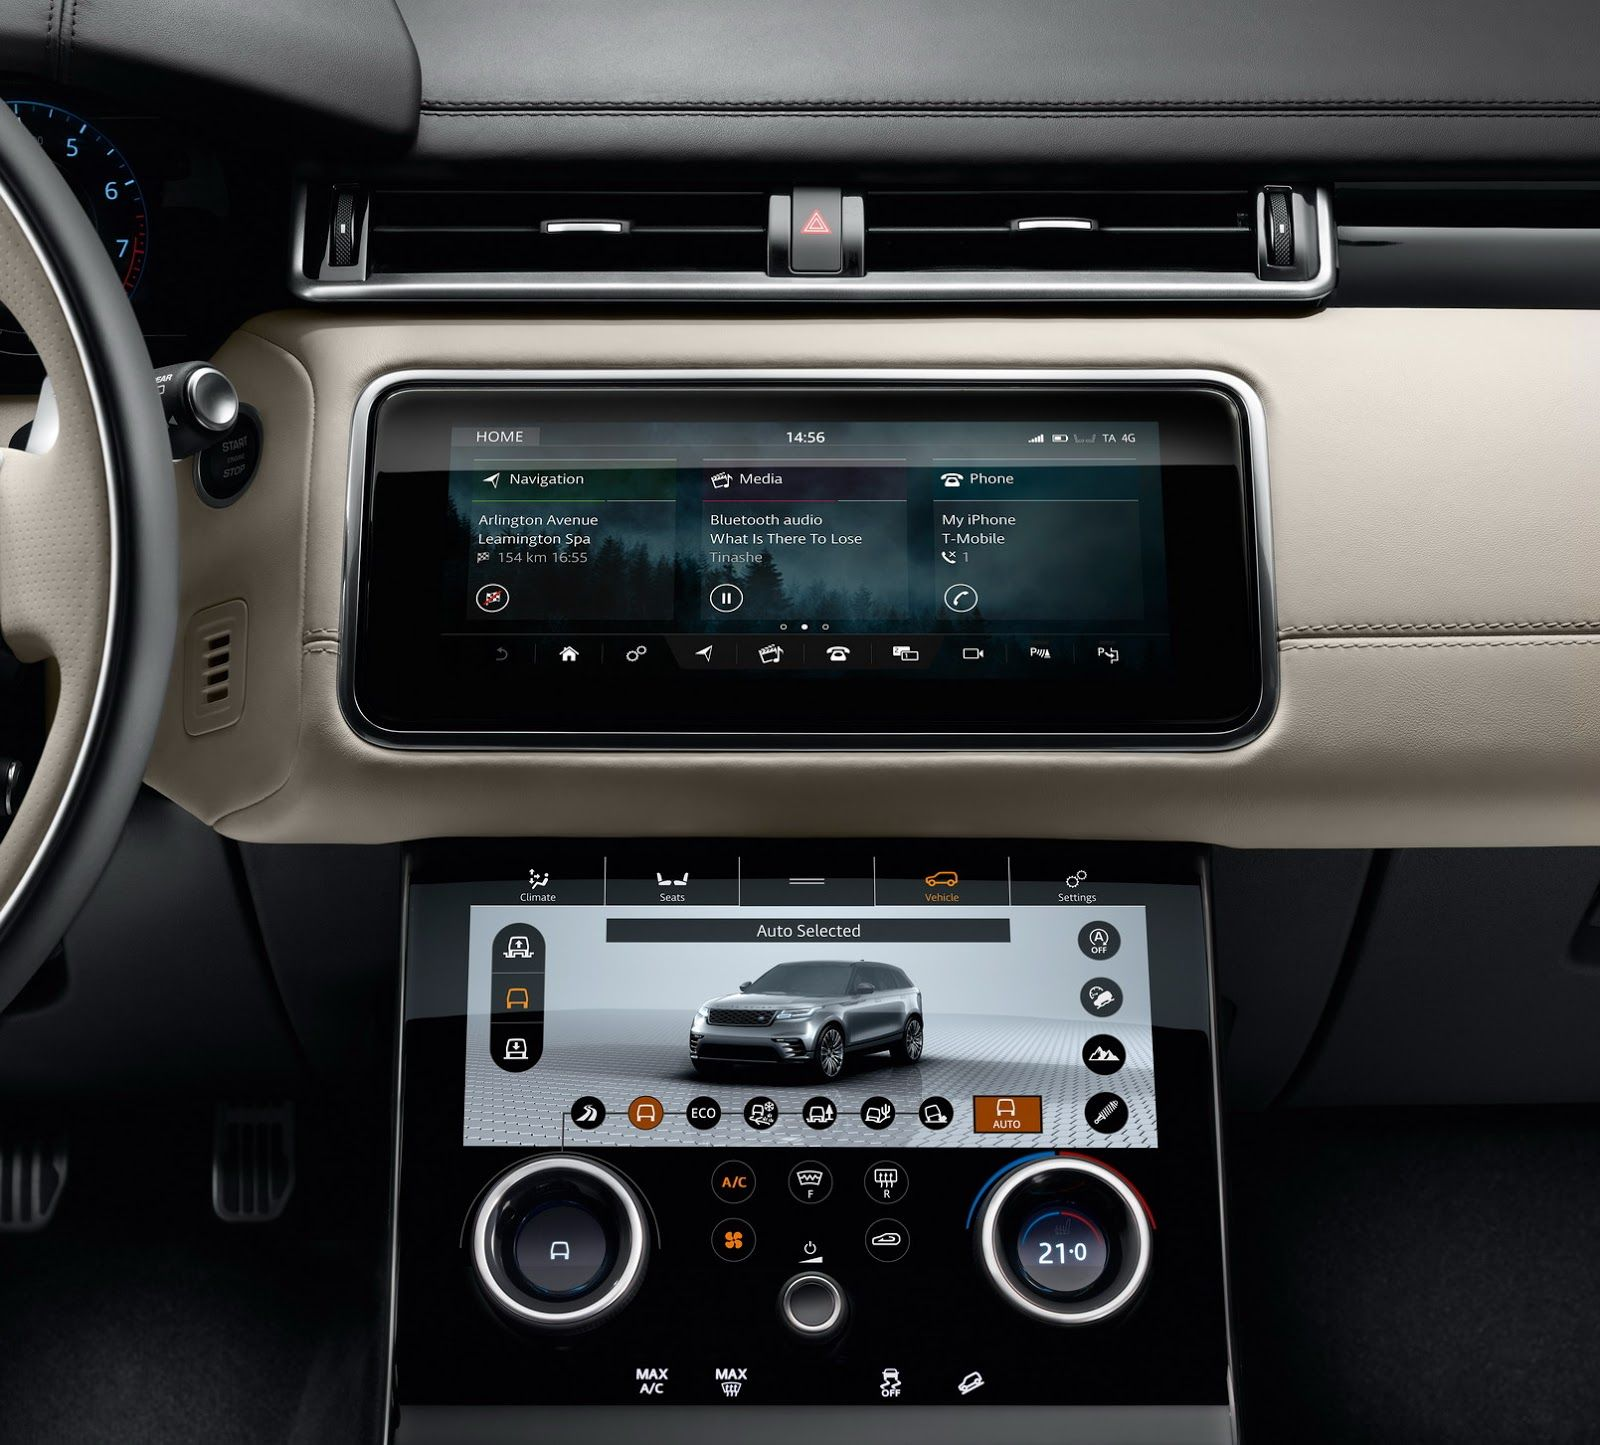 Range Rover Velar 2018 Interior (With images) Range